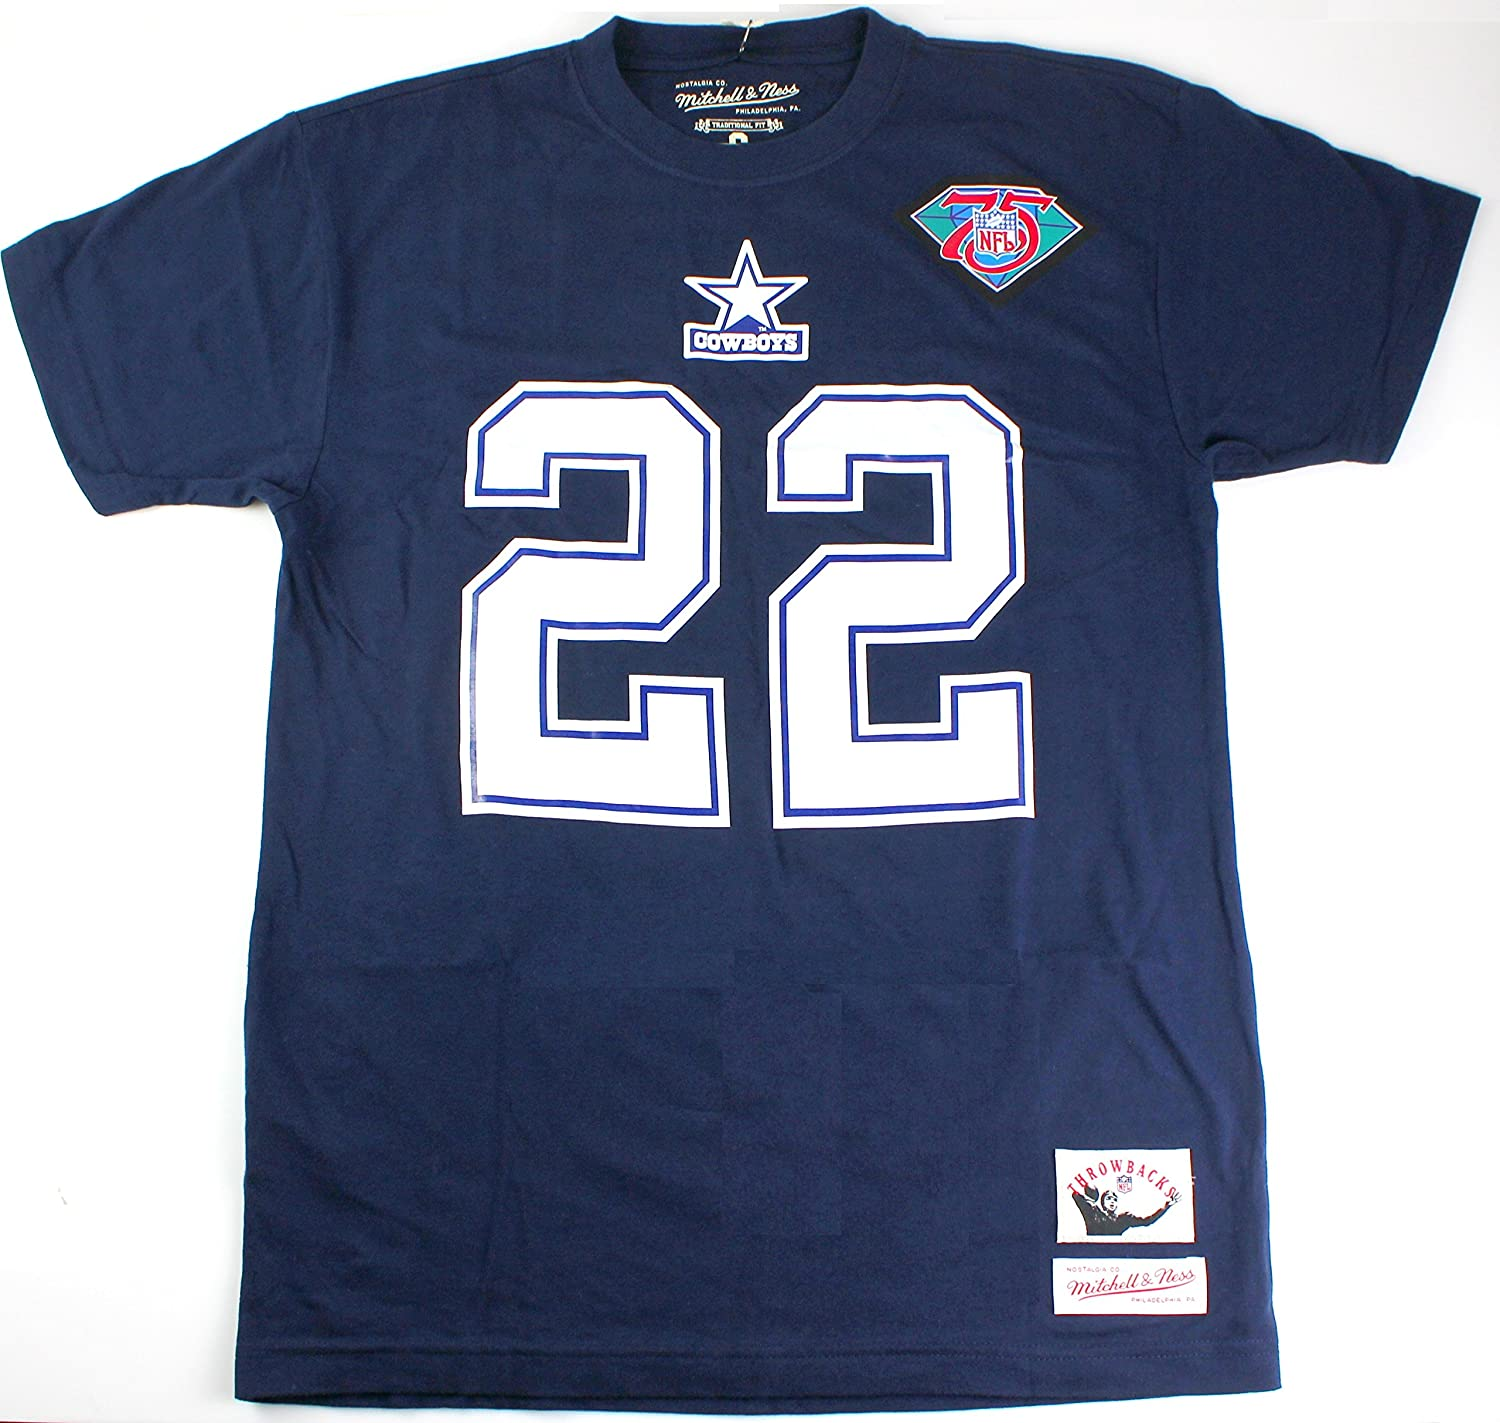 the best attitude 39f4b f812a Emmitt Smith Dallas Cowboys #22 NFL Mitchell & Ness Men's Throwback Name  and Number T-Shirt